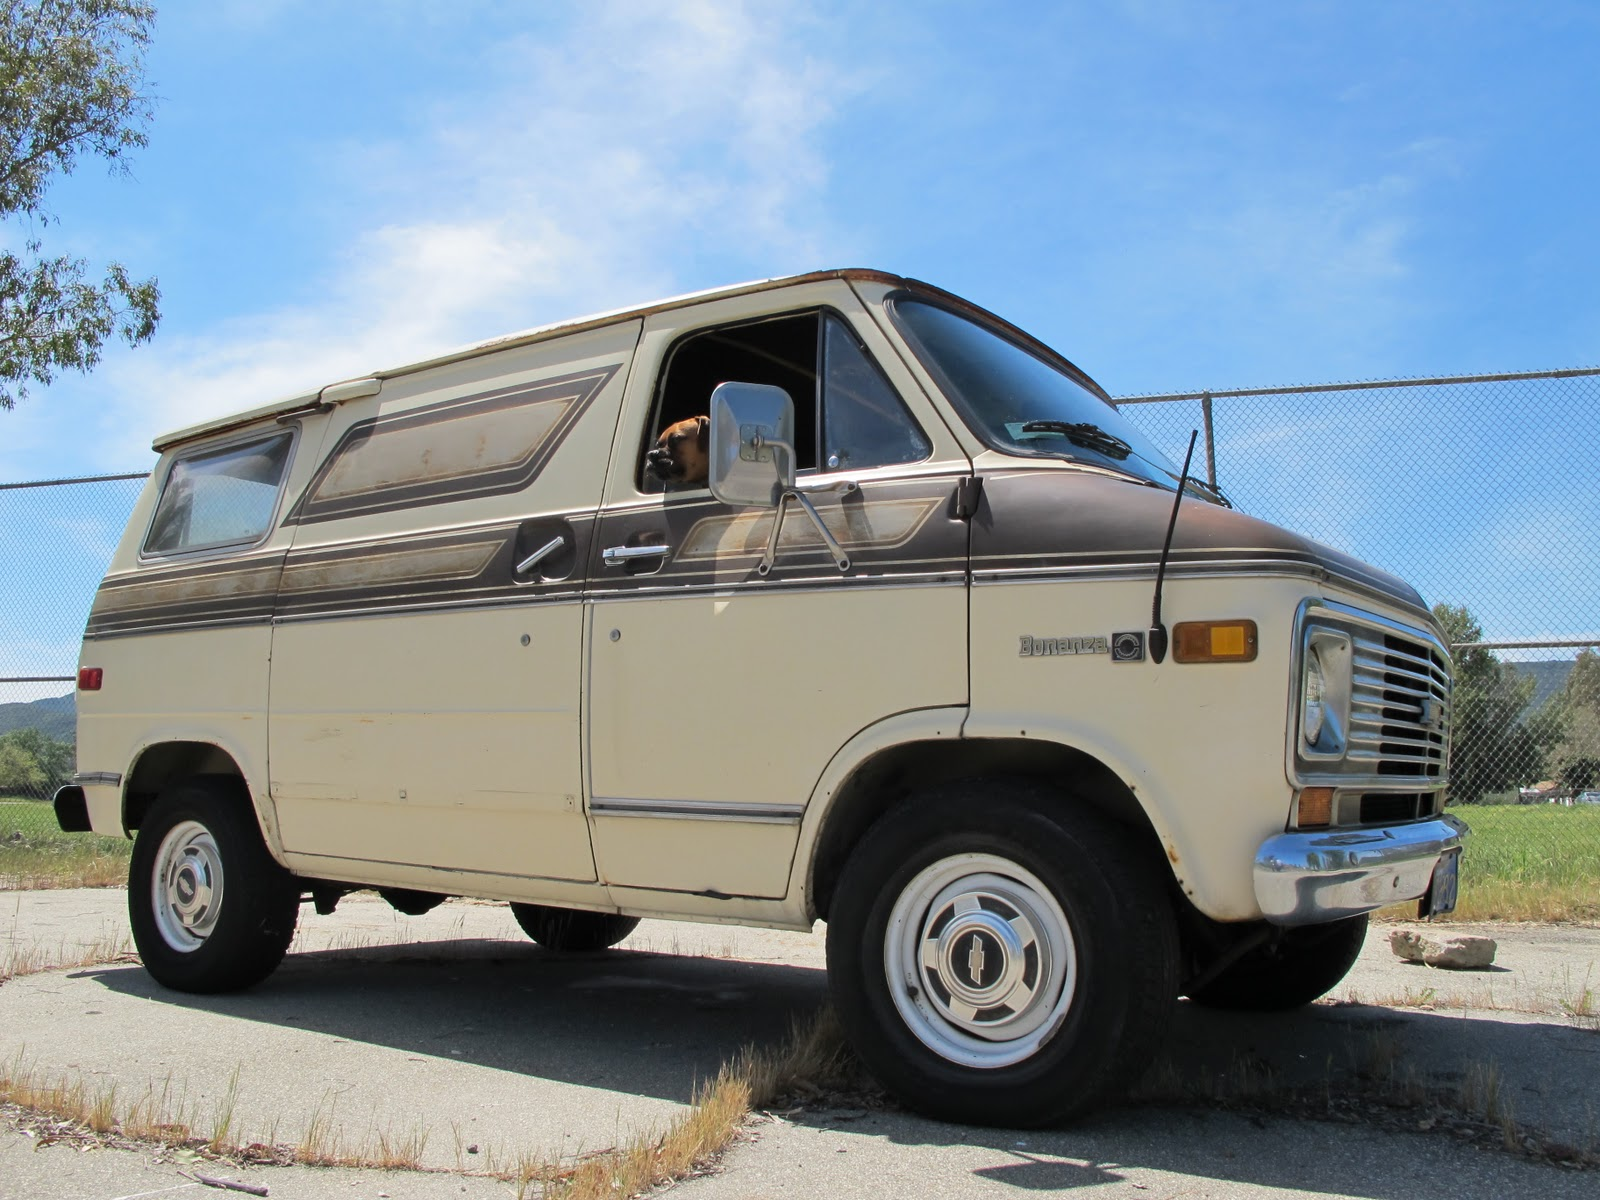 Old Biltwell Blog: Chevy Shorty Van for Sale, Son